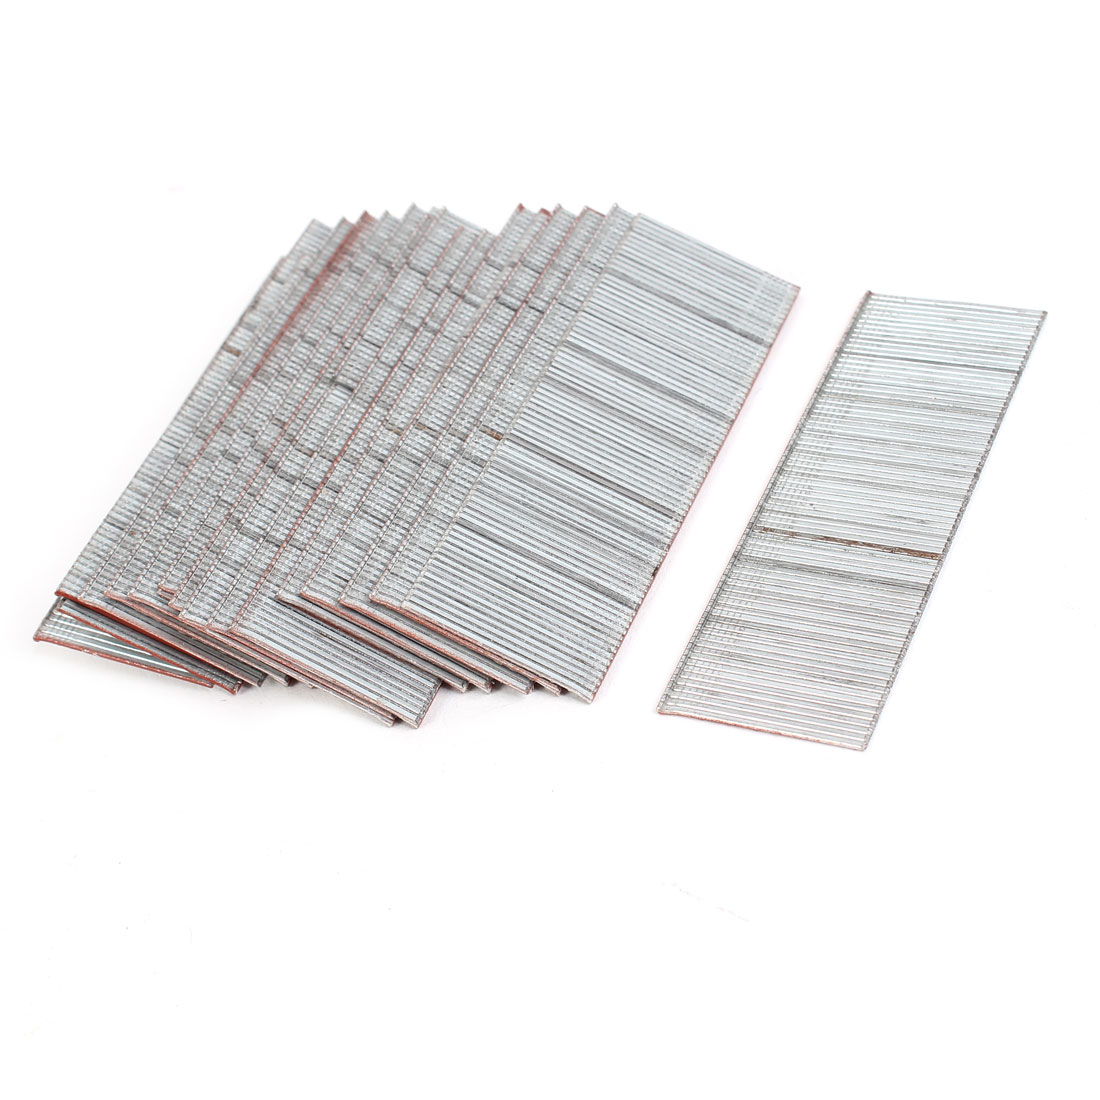 2250pcs 30mm x 1.26mm Metal Straight Staples for Air Driven Staple Nailer